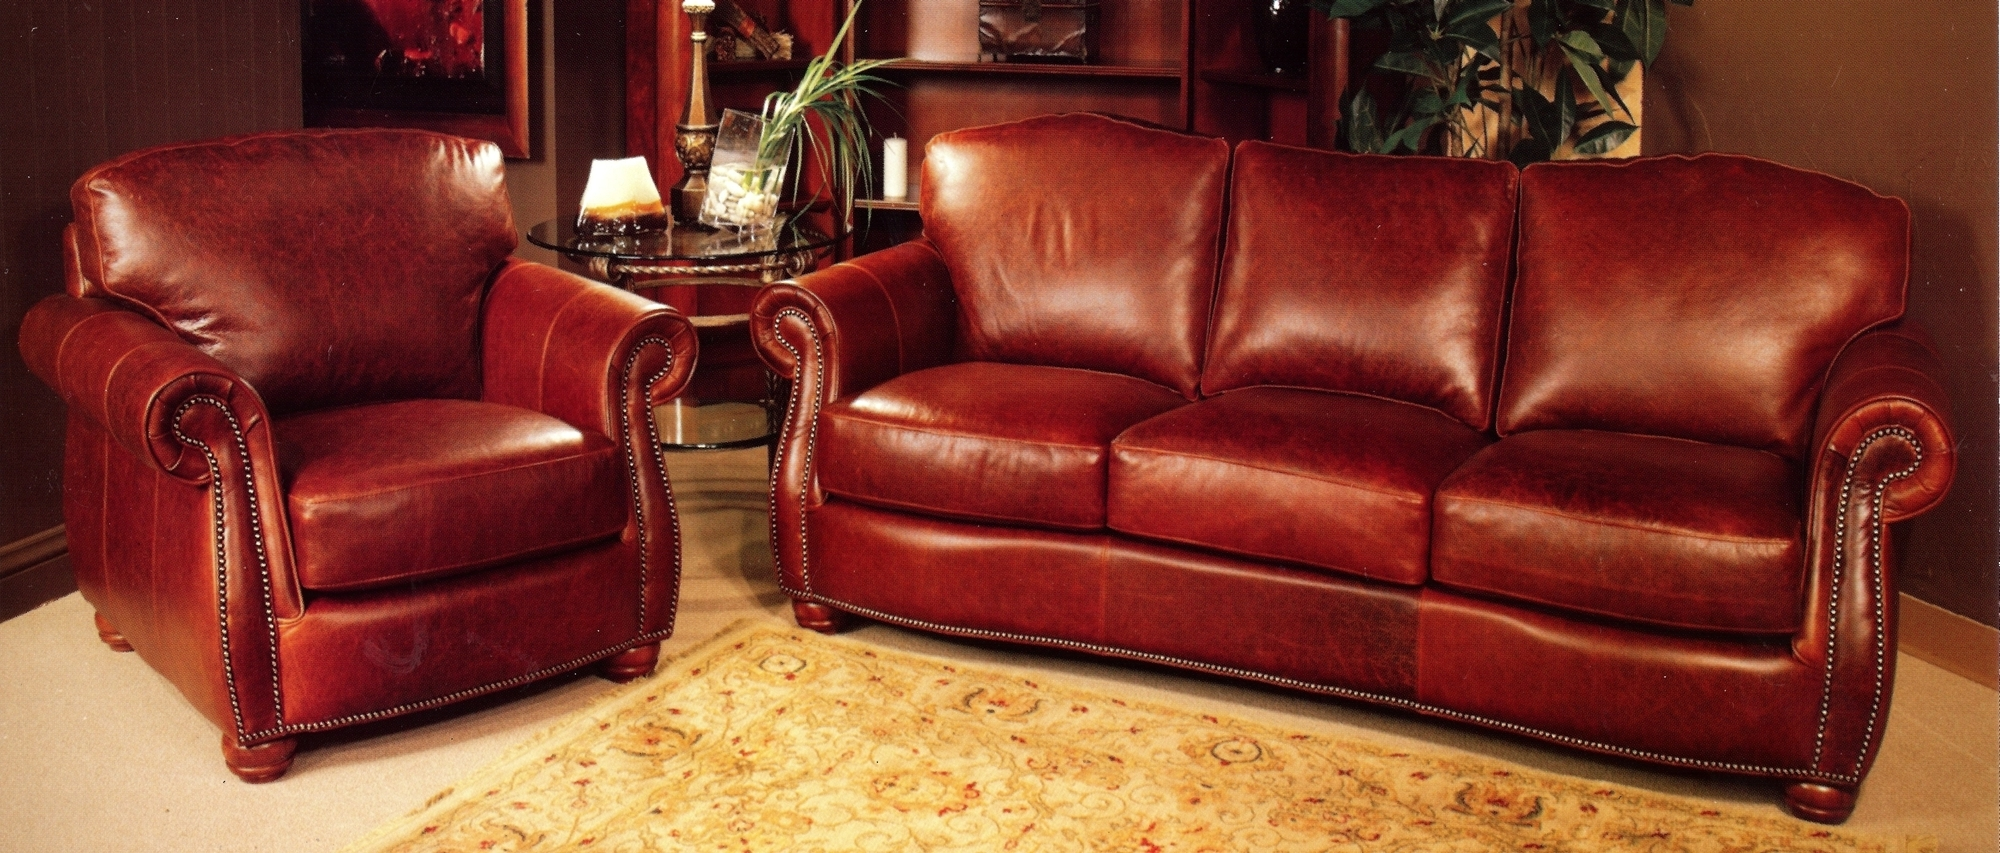 Red Leather Couches Throughout Well Known Rustic Red Leather Sofa And Rustic Red Leather Chair With Rustic (View 12 of 20)